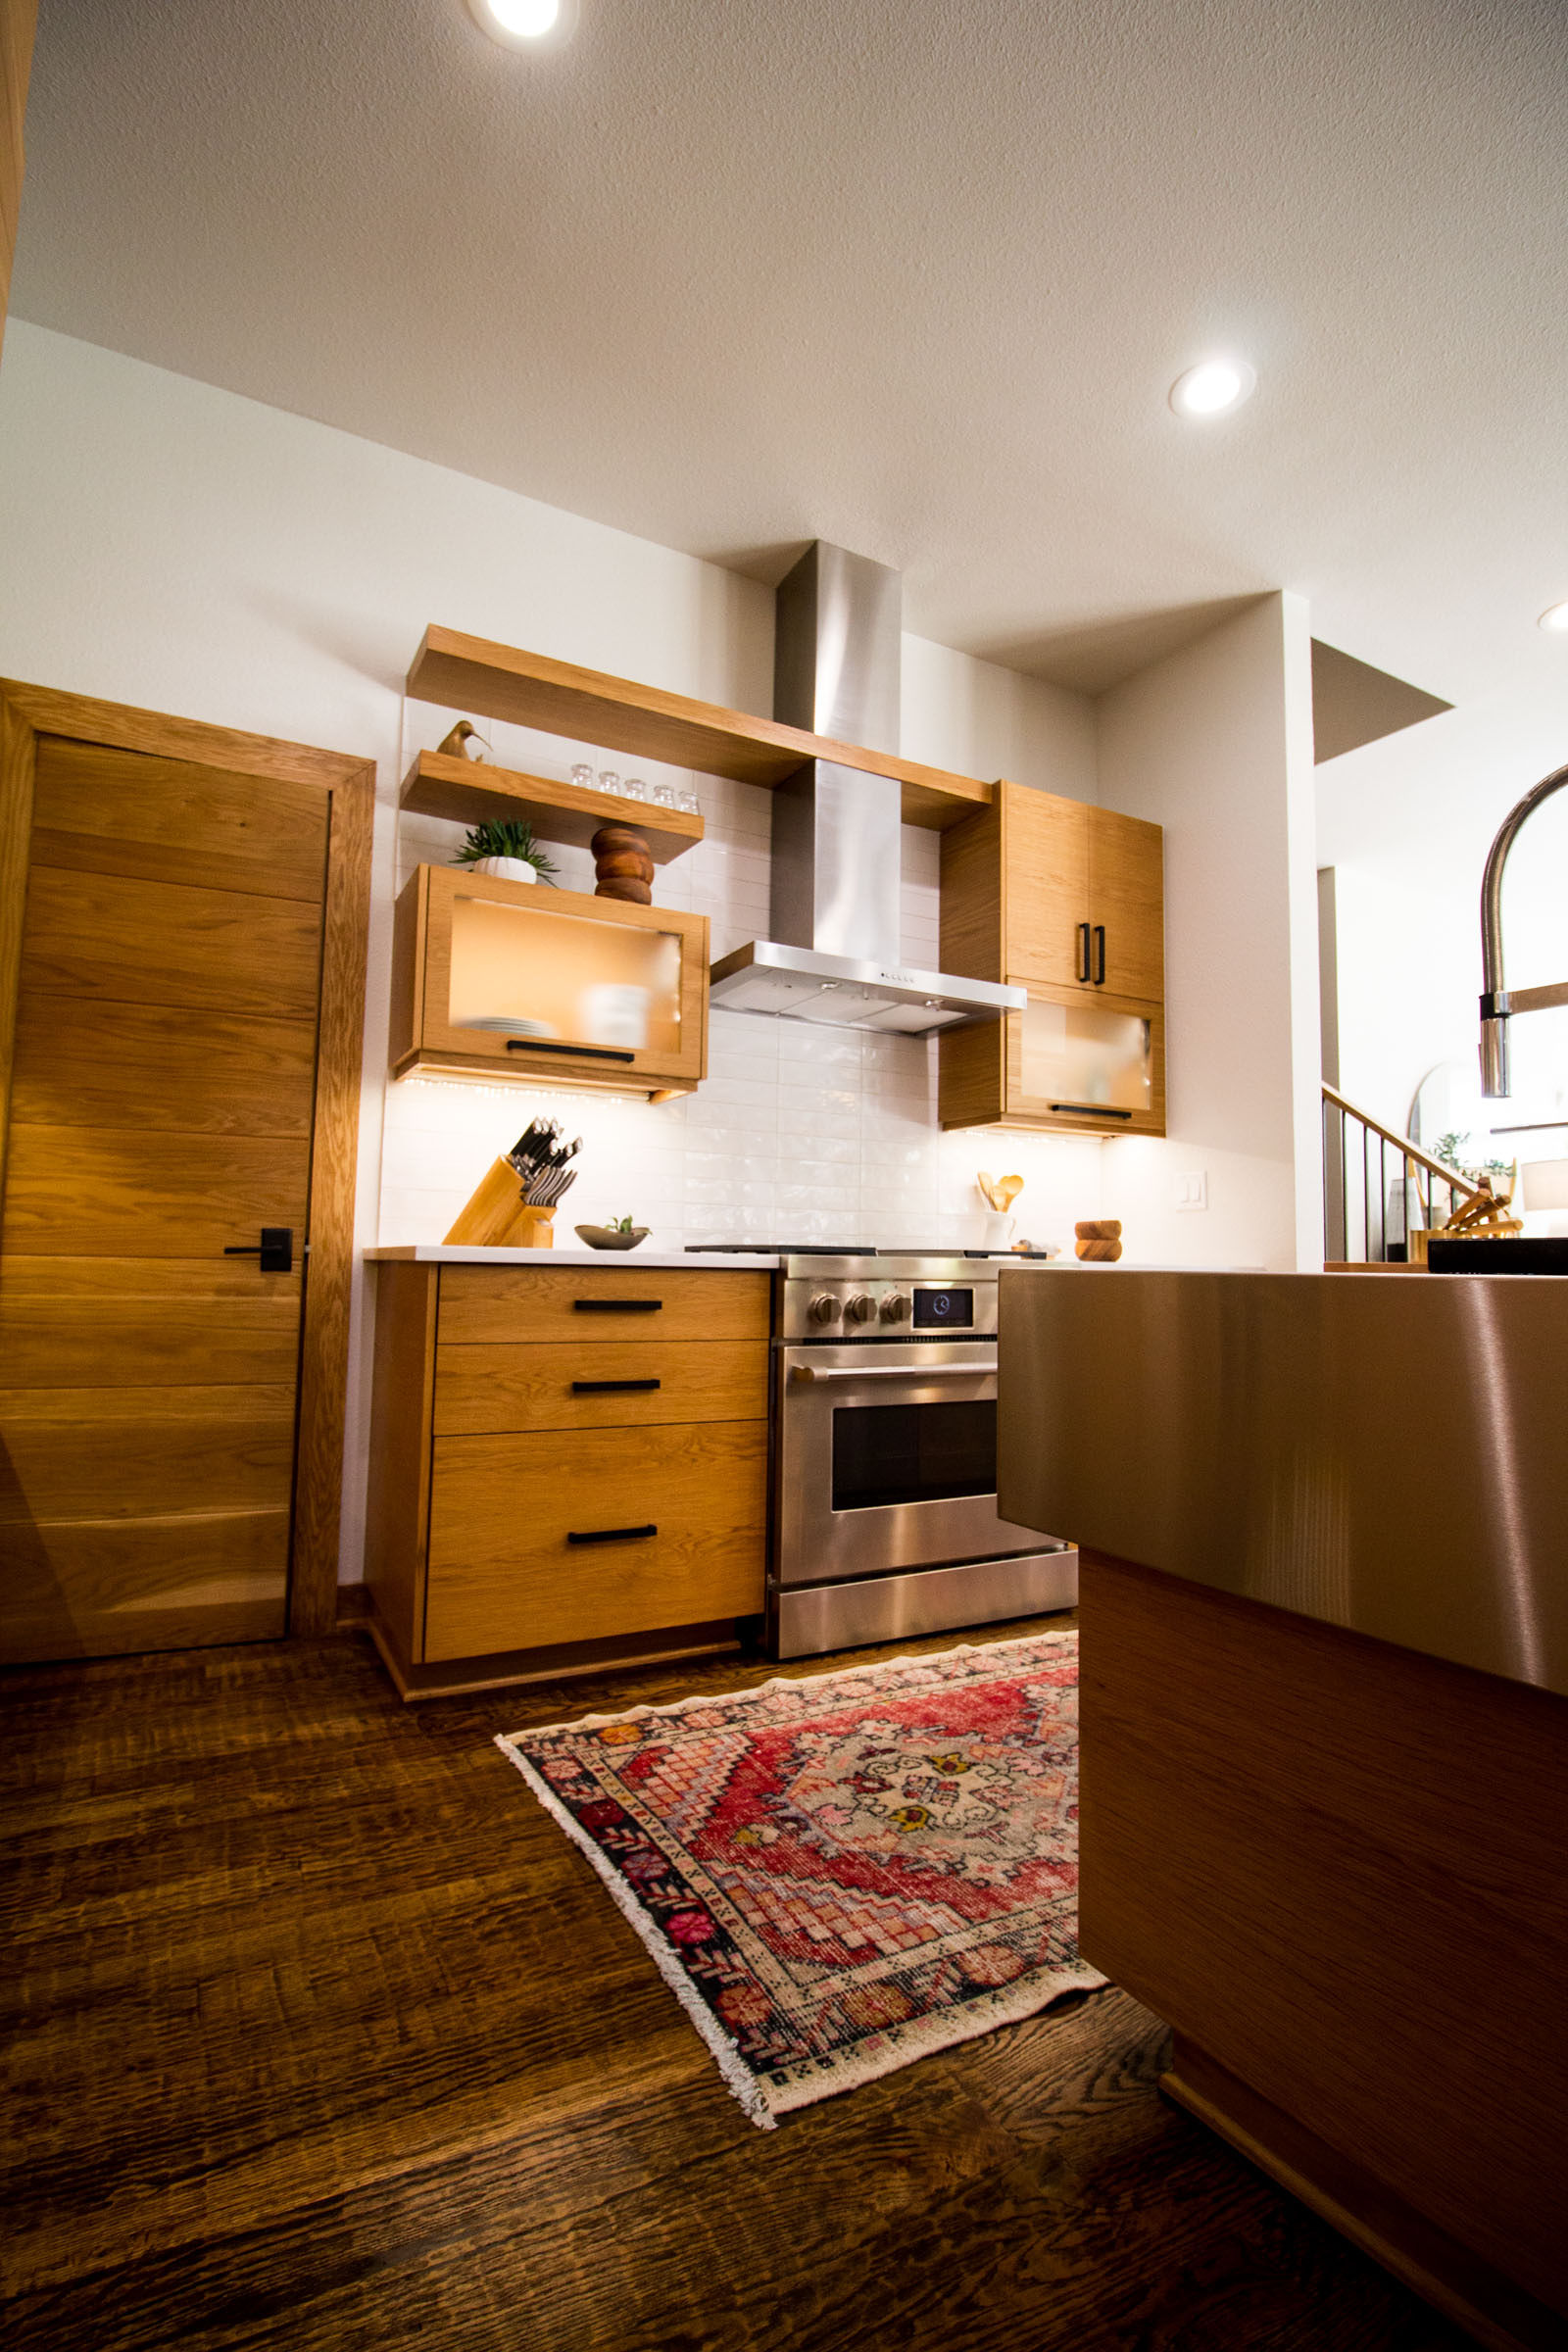 Hard wood floors, blonde cabinets, stainless steel appliances